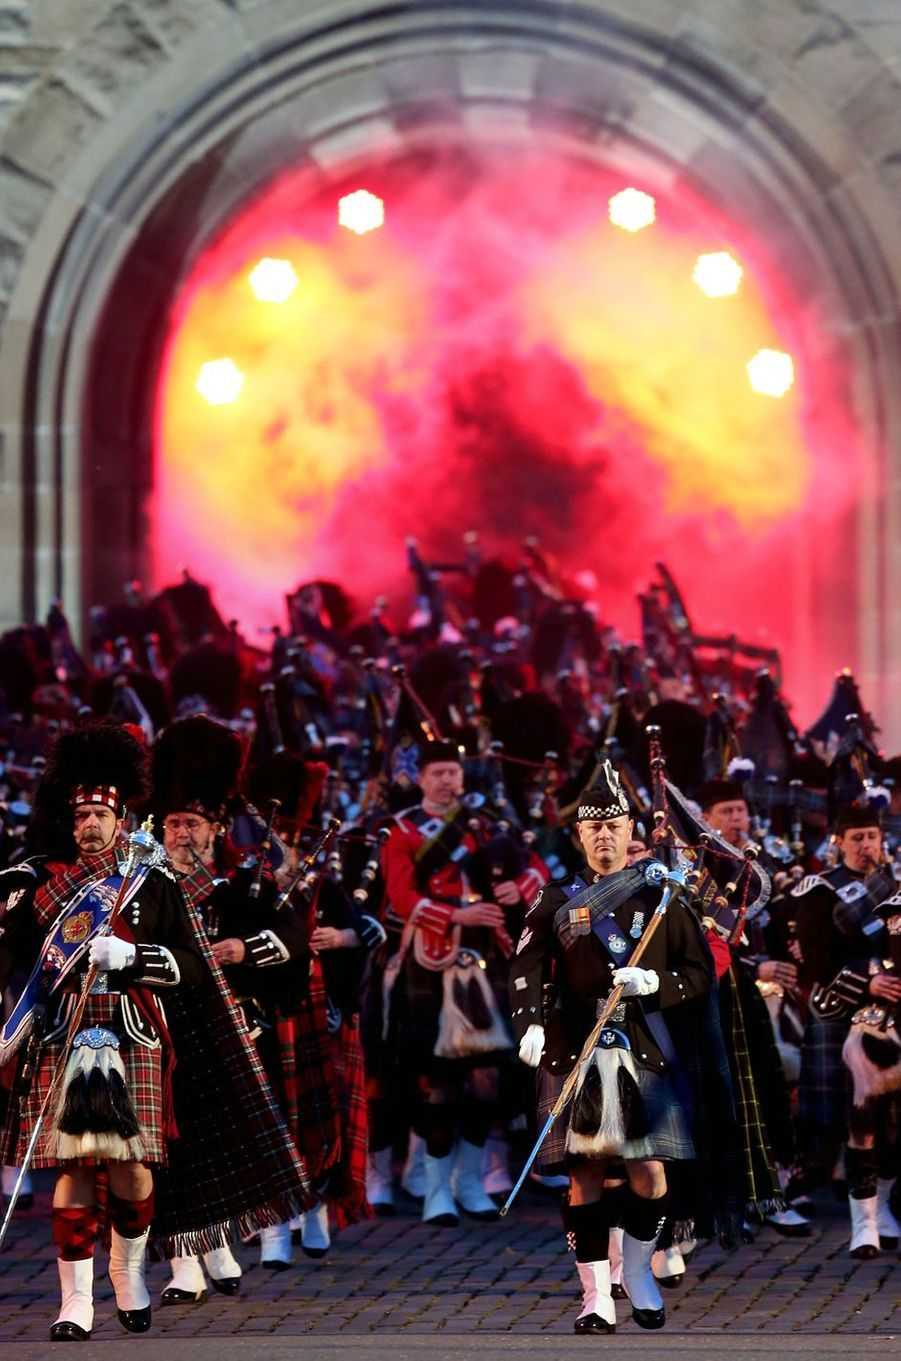 Spectacle du Royal Edinburgh Military Tattoo à Edimbourg, le 16 août 2017